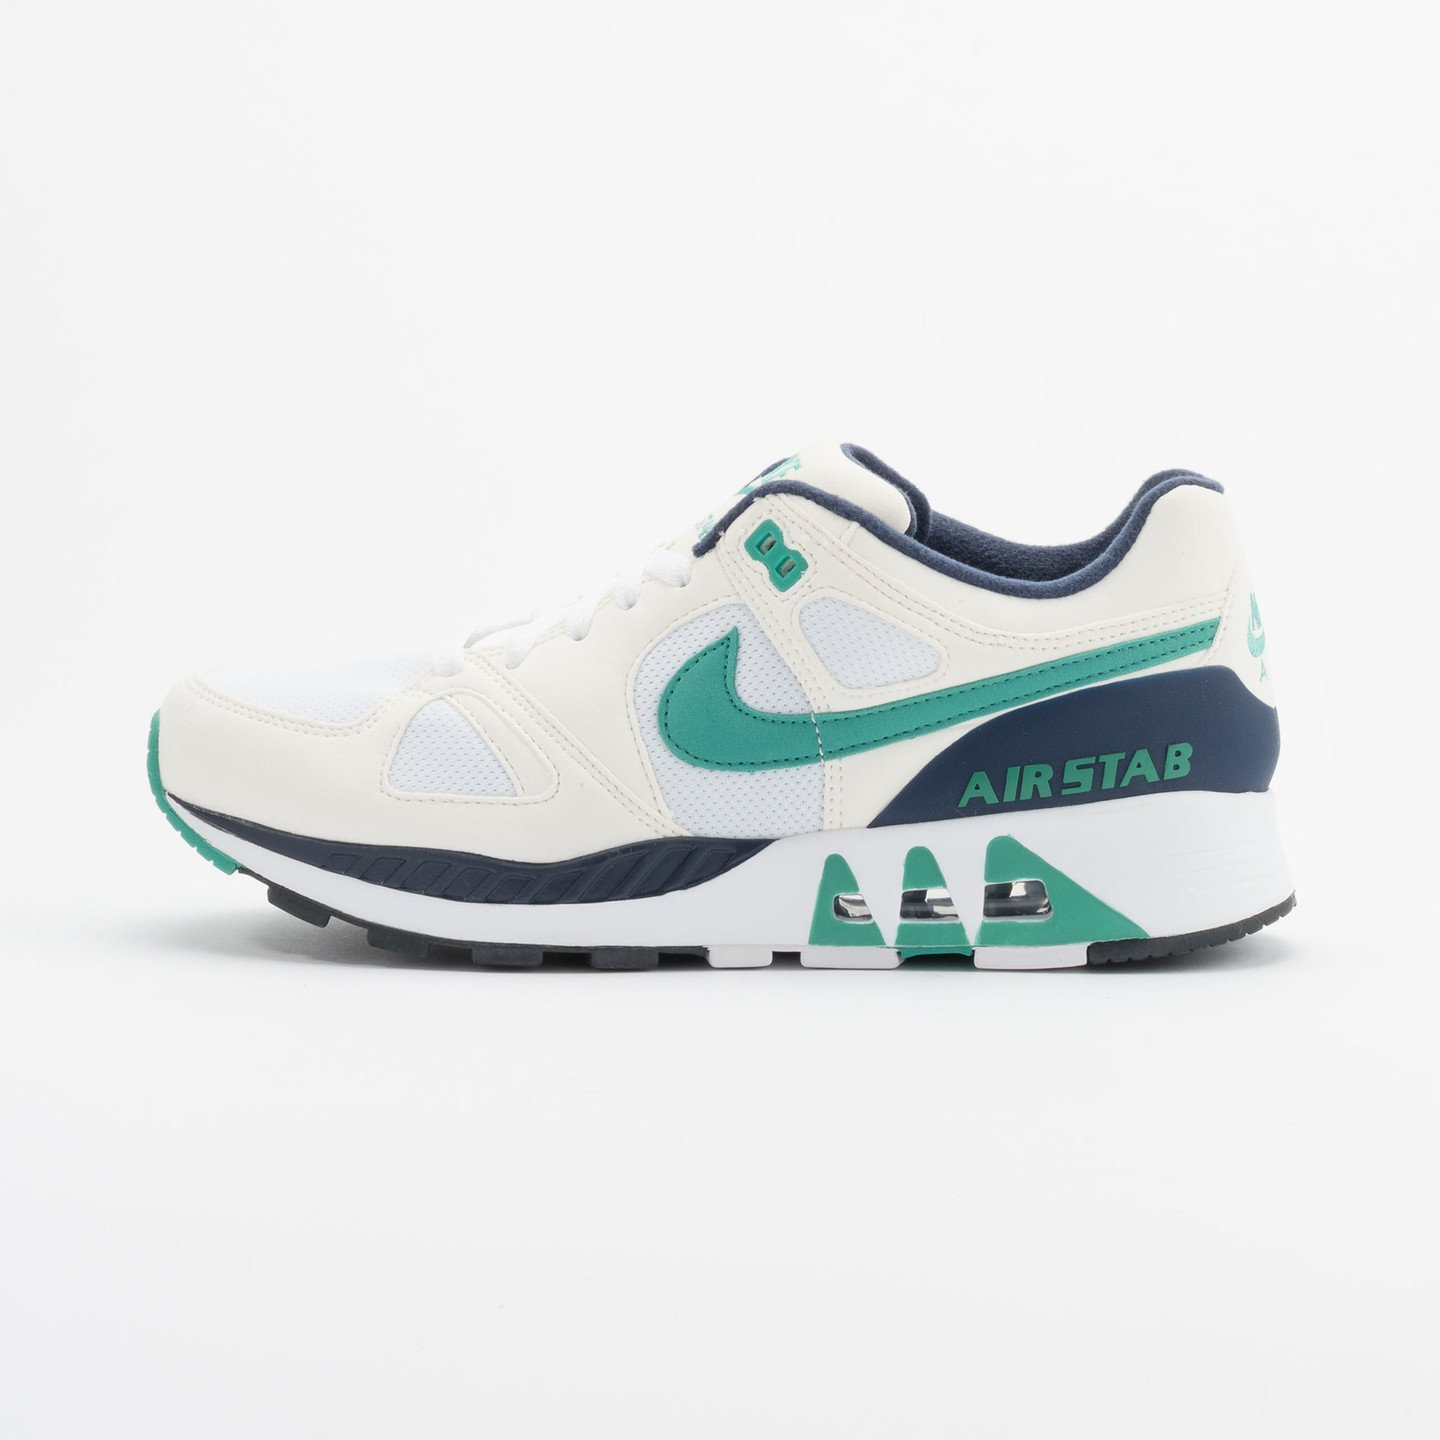 Nike Air Stab White/Emerald Green-Sl-Mid Nvy 312451-100-42.5